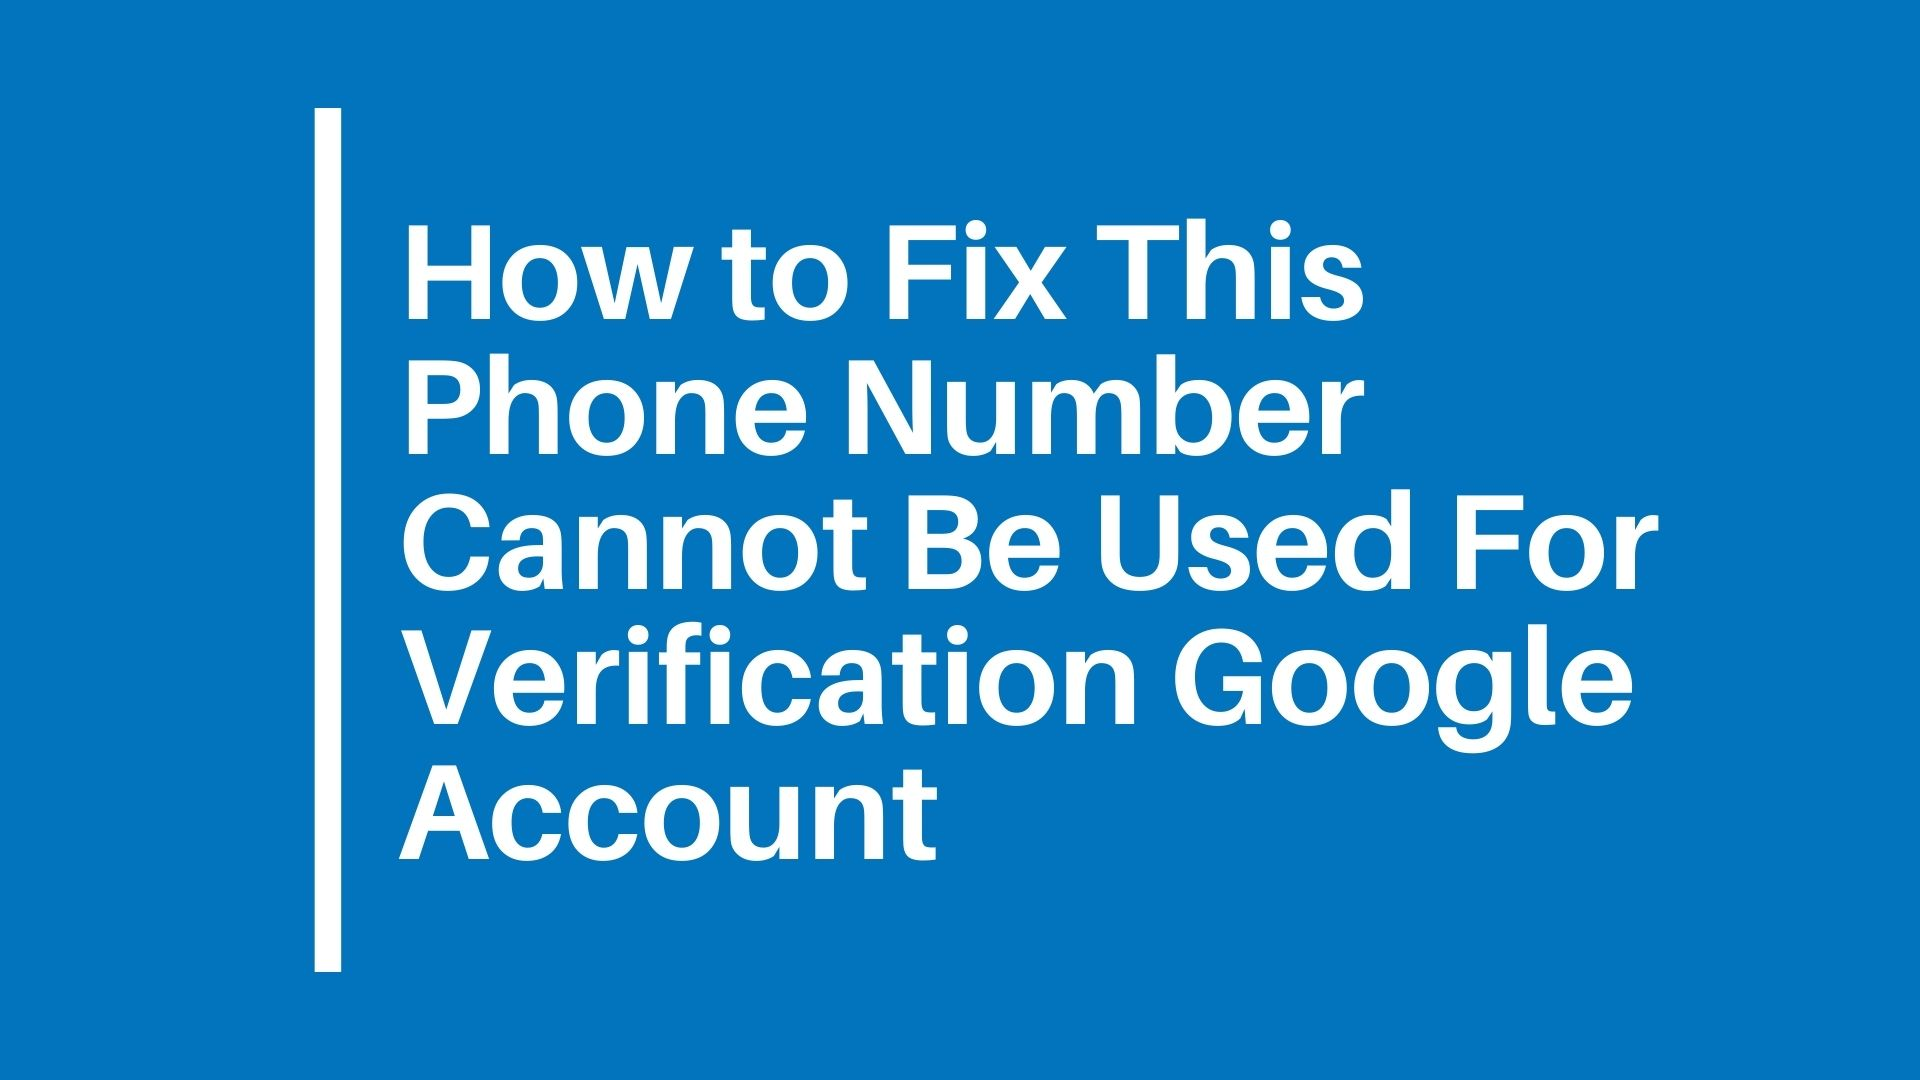 How to Fix This Phone Number Cannot Be Used For Verification Google Account